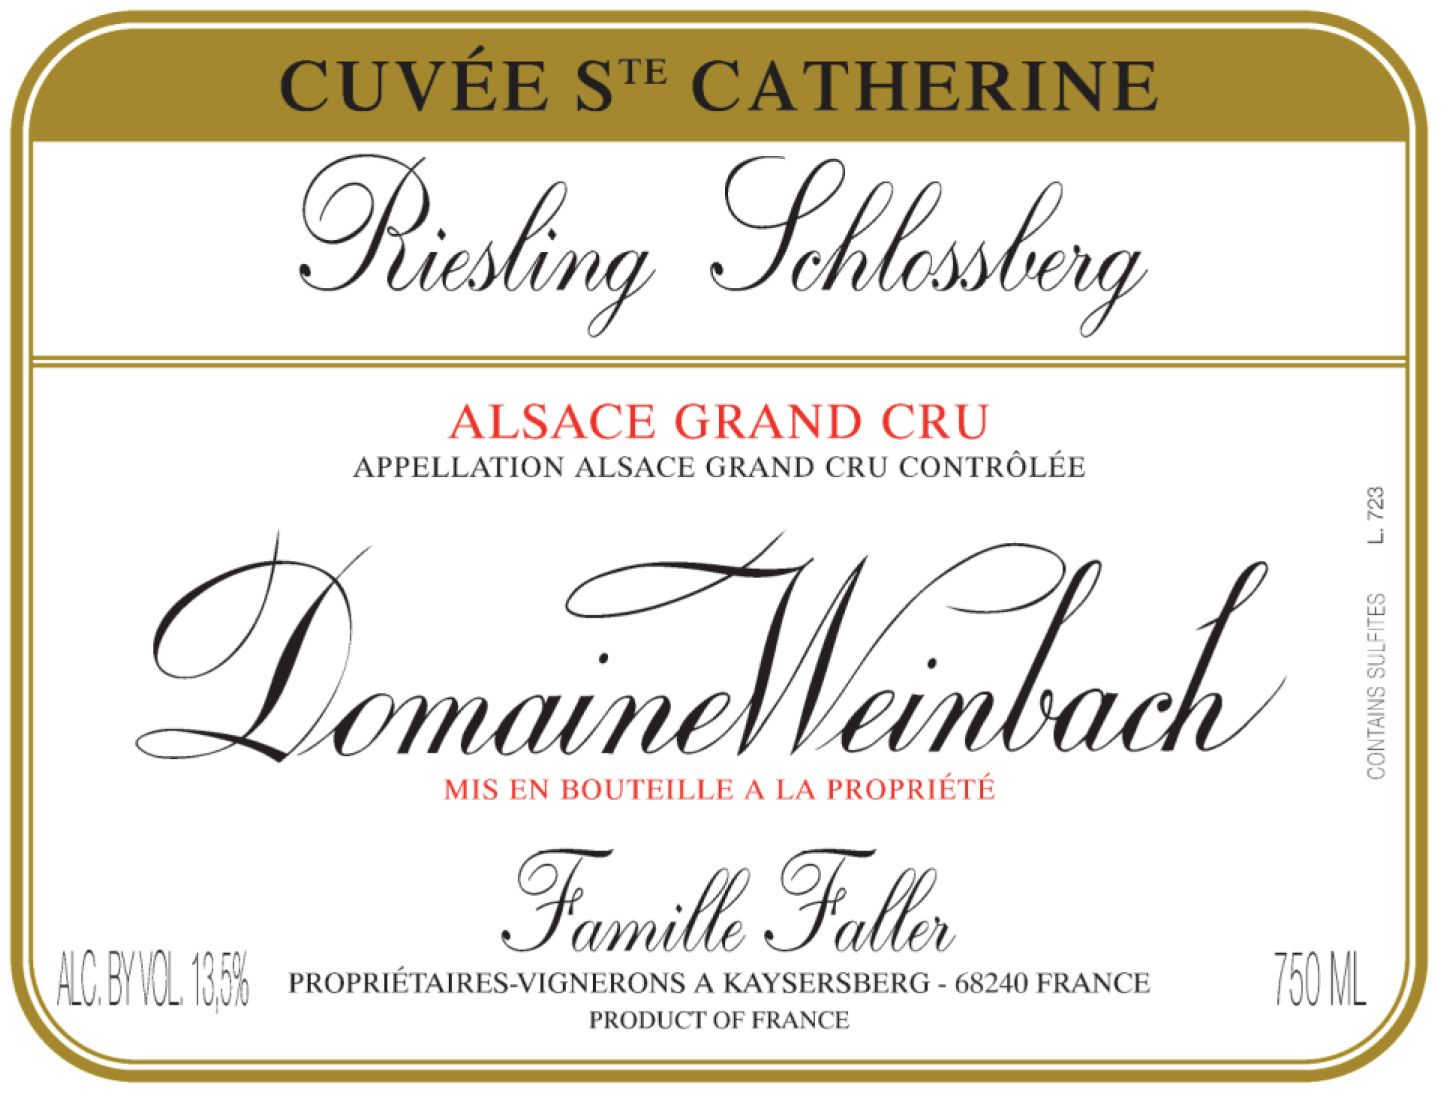 Domaine Weinbach Schlossberg Cuvee Sainte Catherine Grand Cru Riesling 2017  Front Label